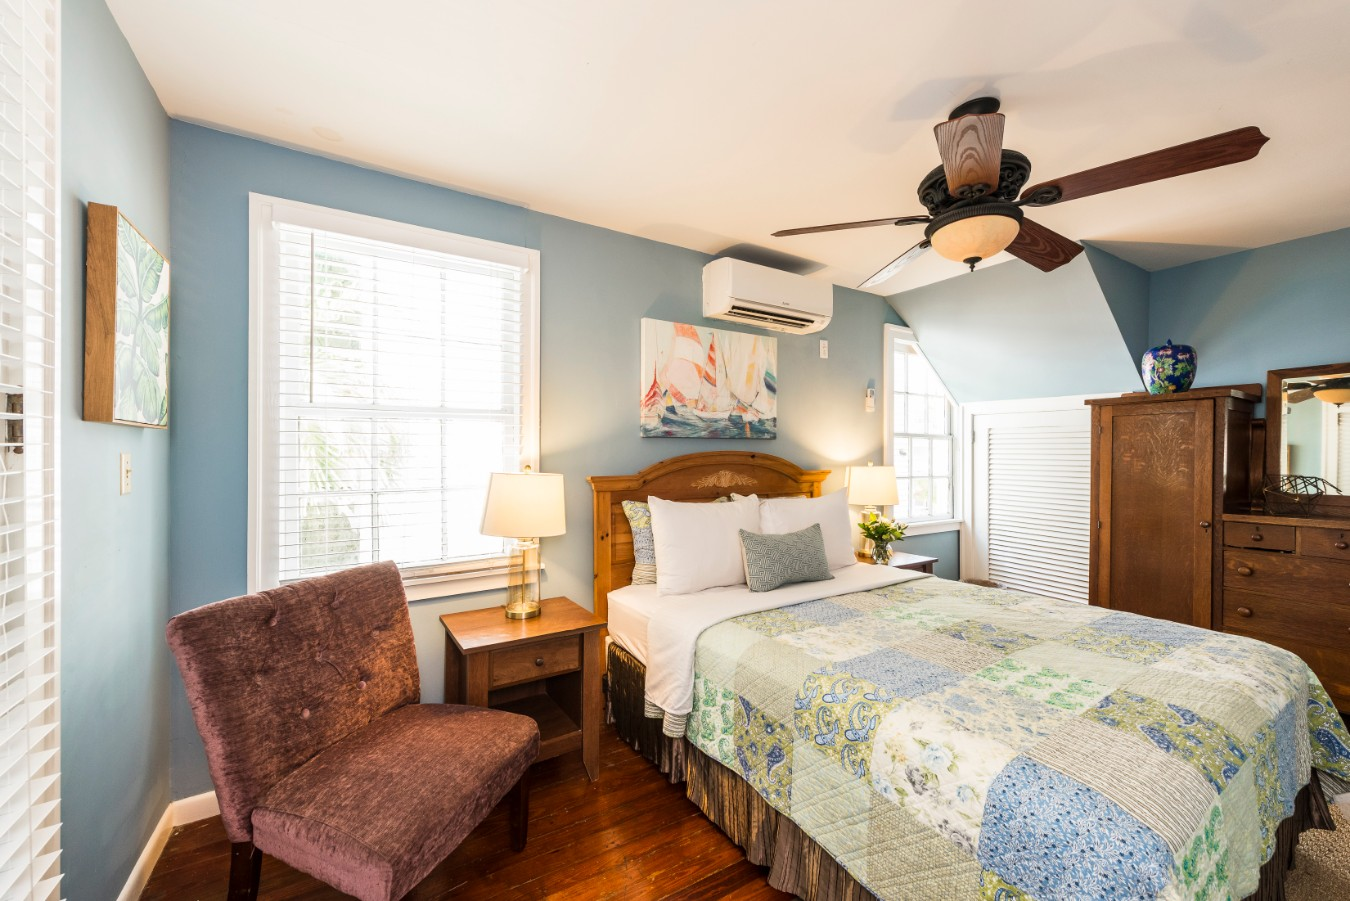 Key West Vacation Rental - William Skelton Home - Second Floor Queen Bedroom